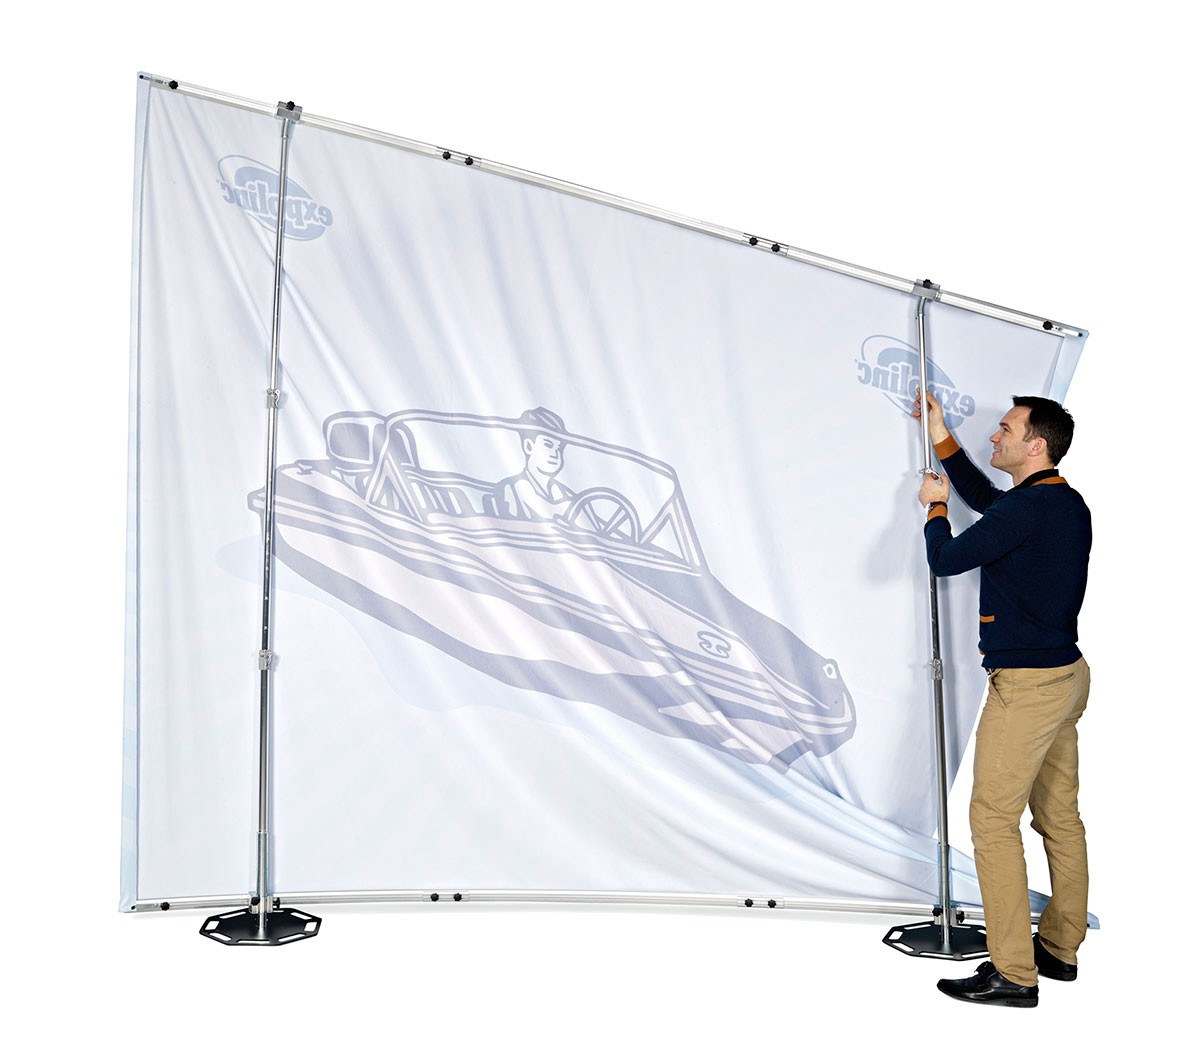 Expolinc Fabric System 10x8 Outer Curve Wall